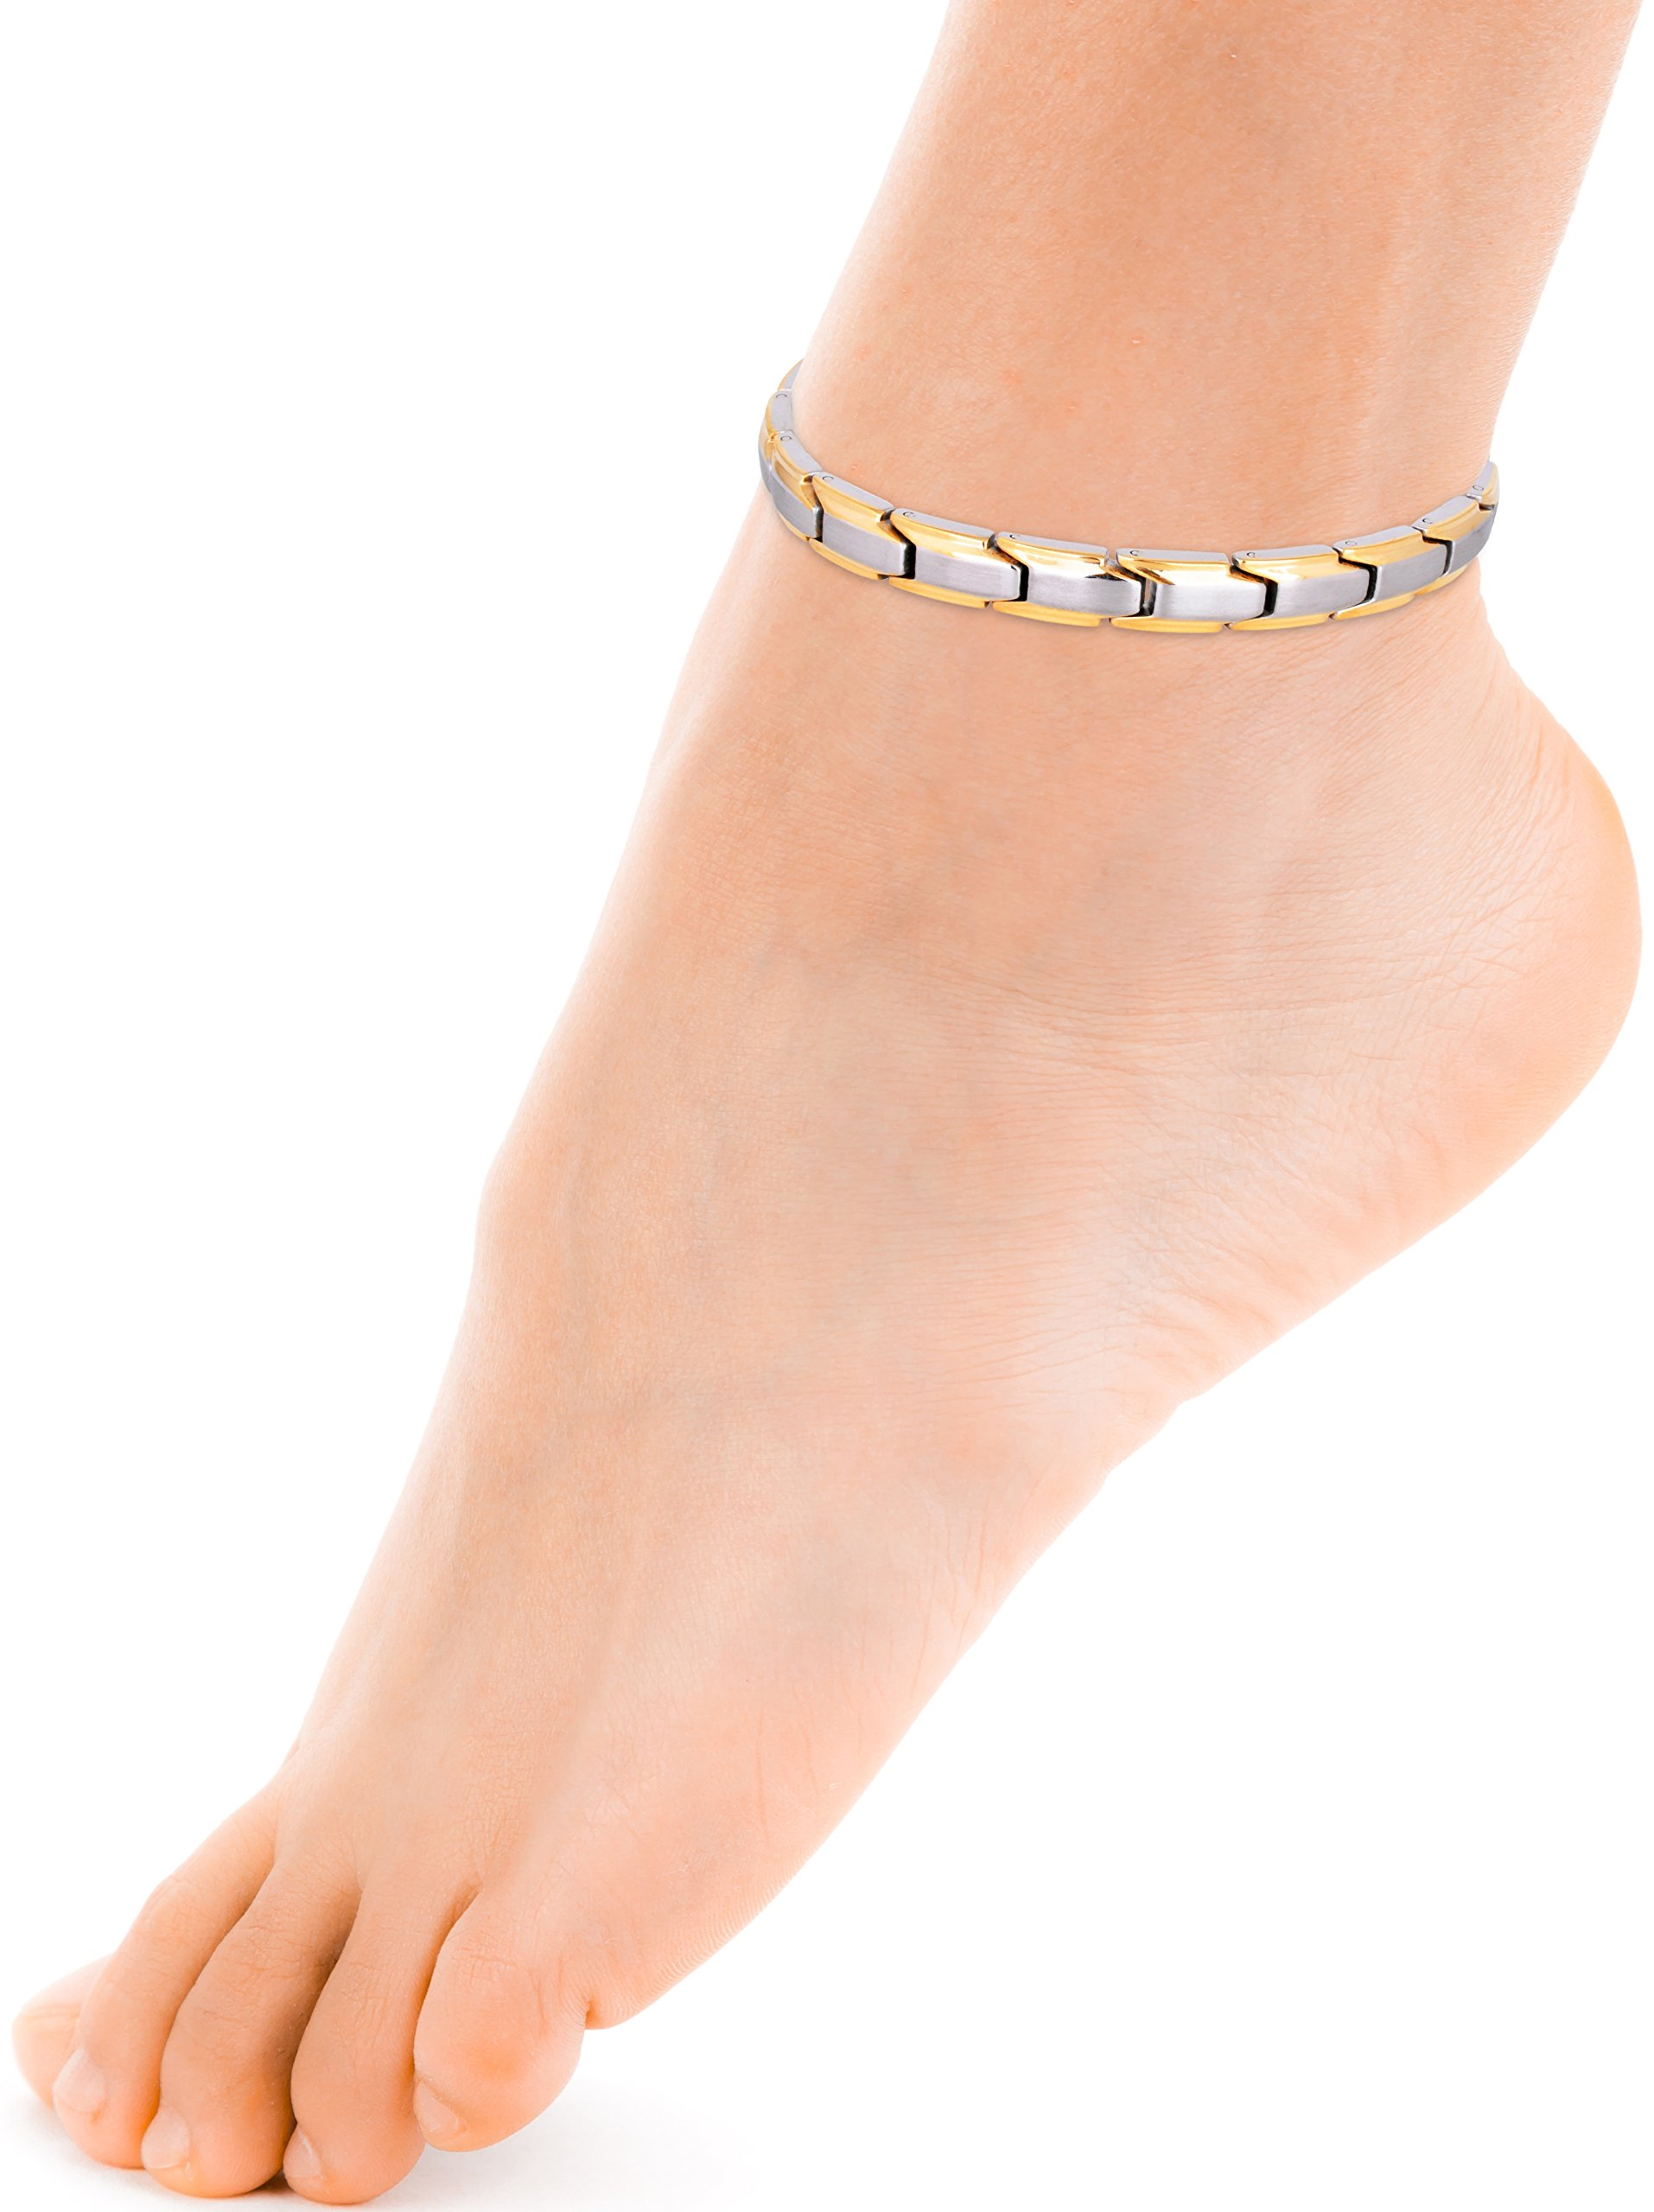 store women foot womens product pearl color pulseira vintage feminina for multi barefoot sandal gold anklet design anklets chain glass simple